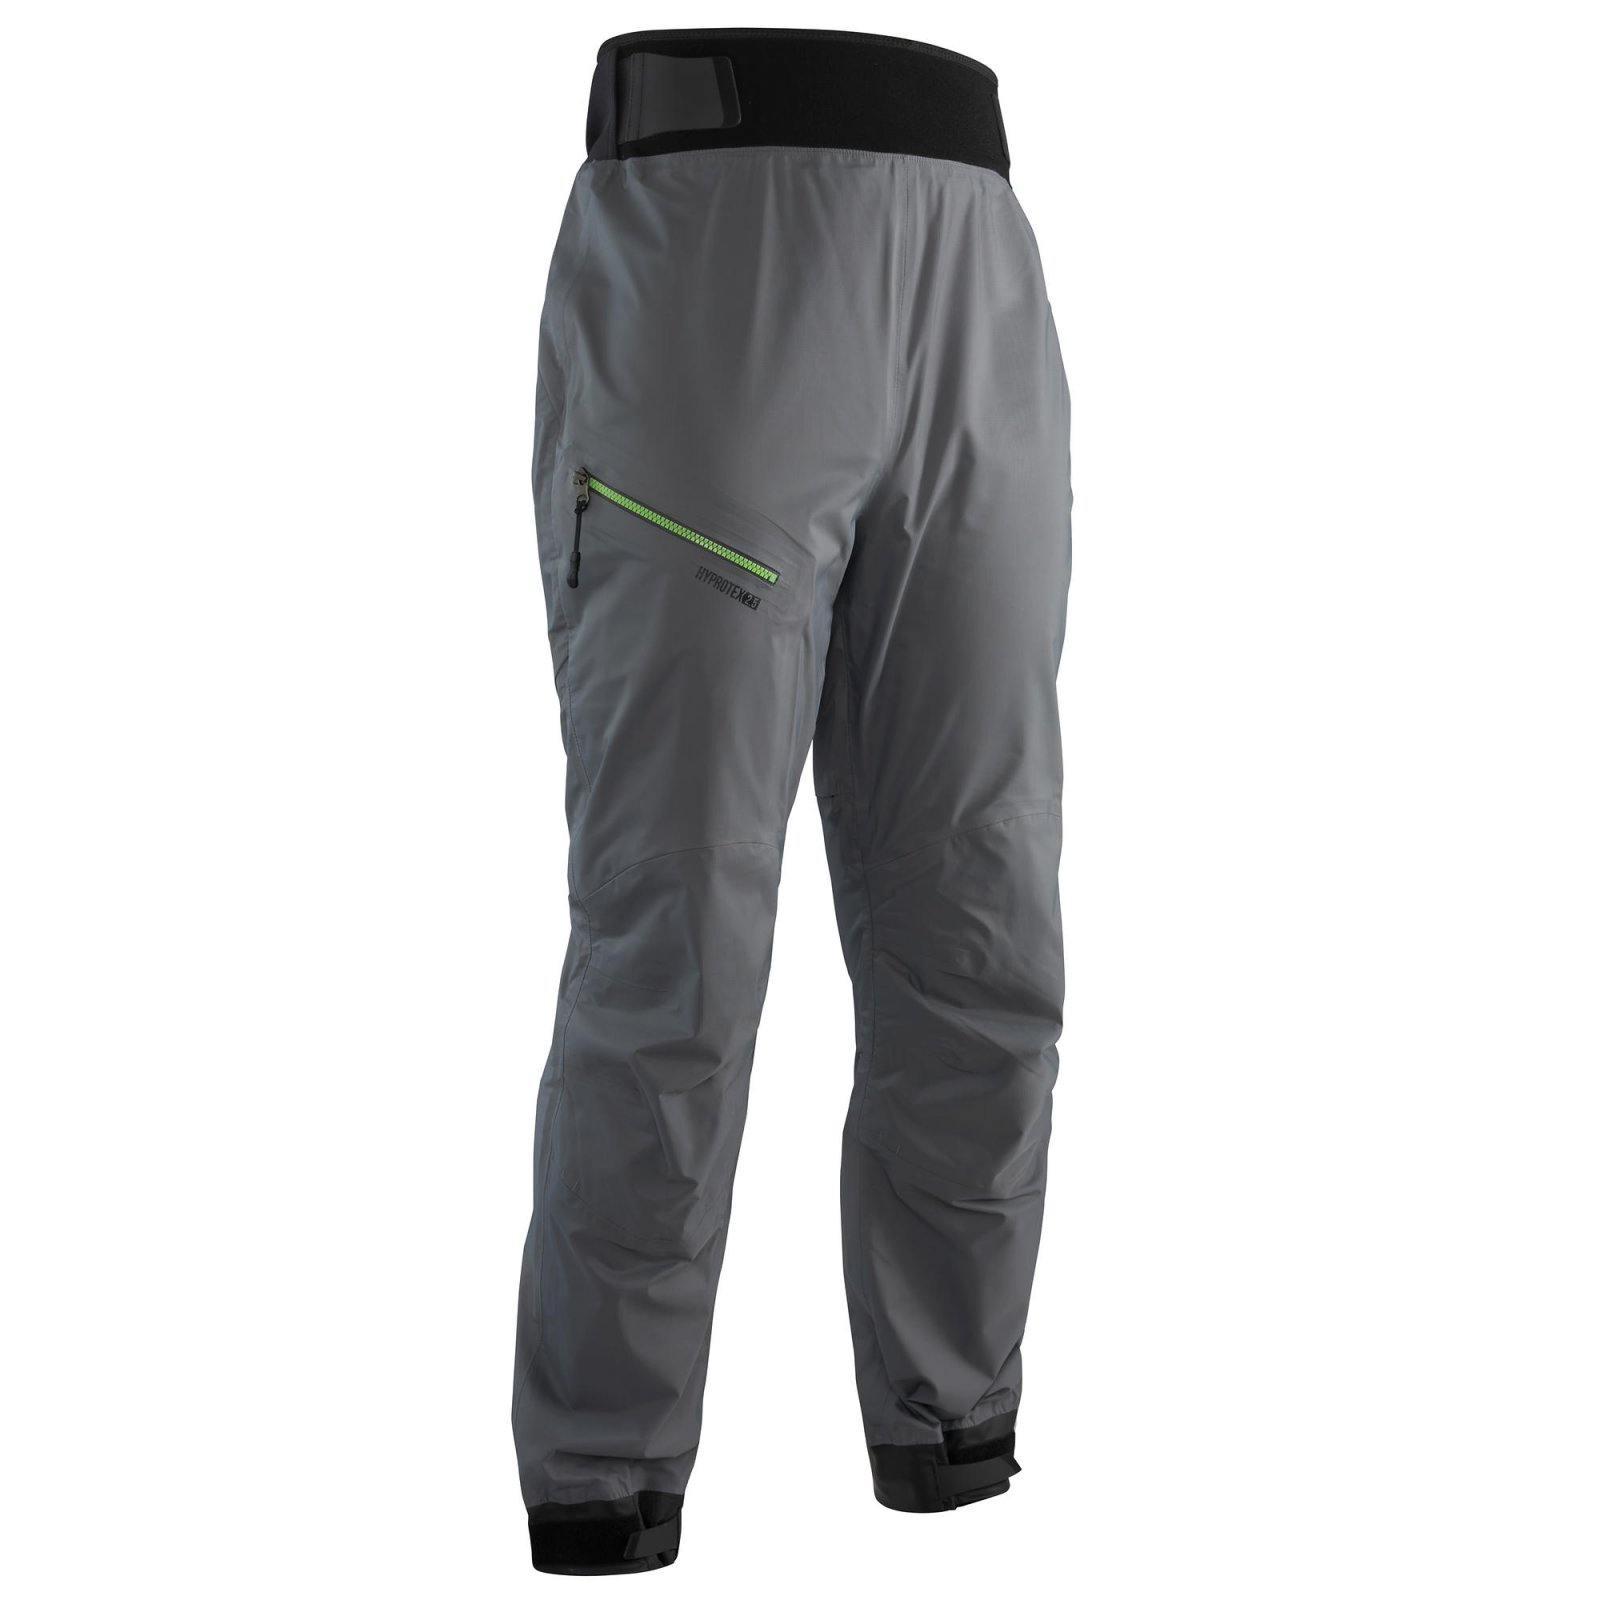 NRS Endurance Splash Pants Men's